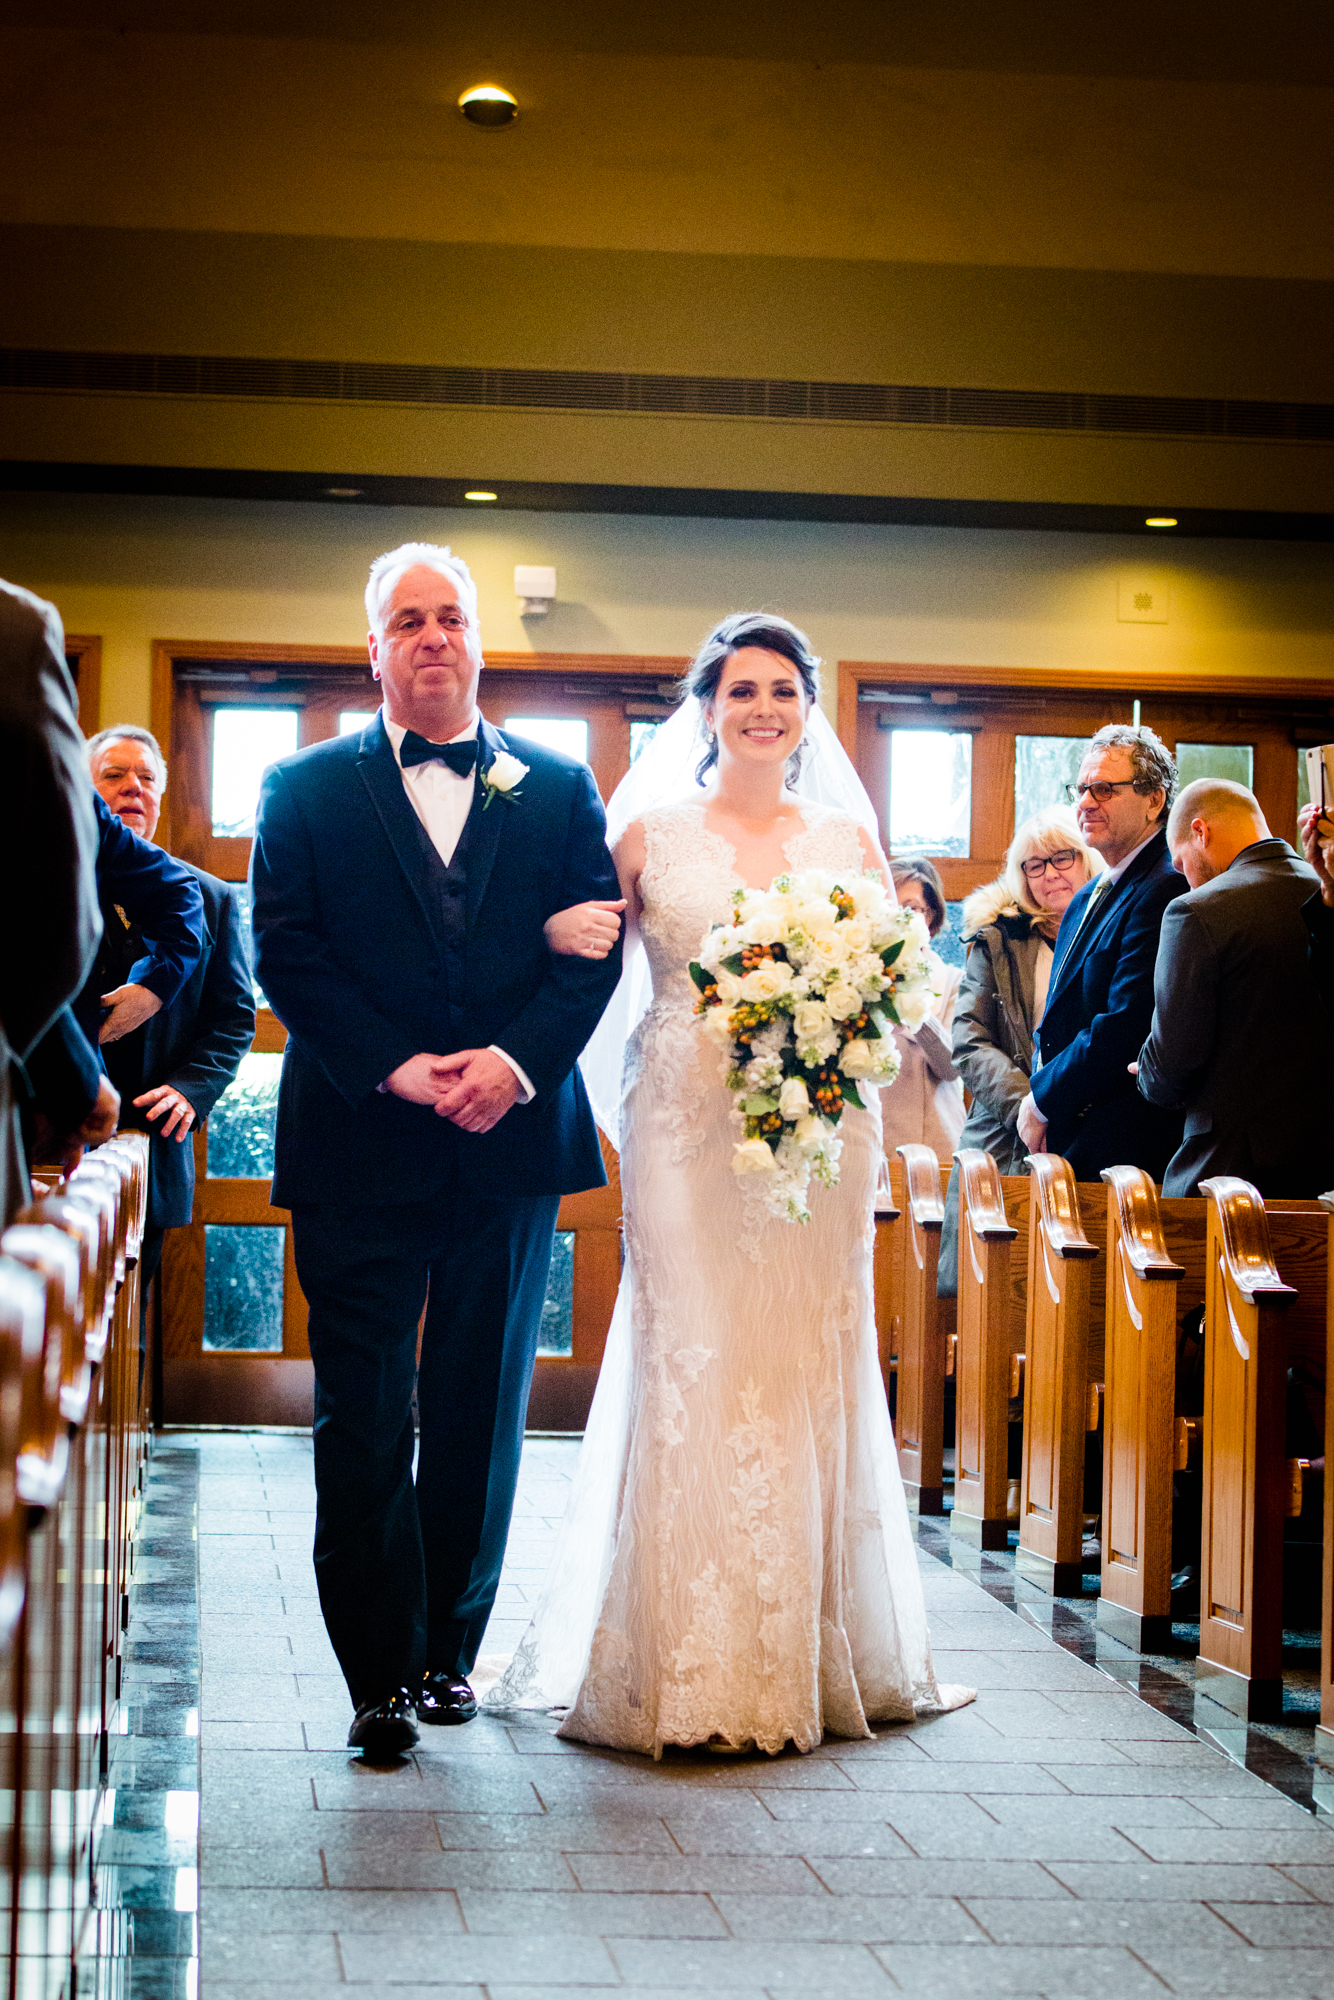 STEPHANIE AND TODDS WEDDING - SPRING MILL MANOR - IVYLAND PA WEDDING - 041.jpg